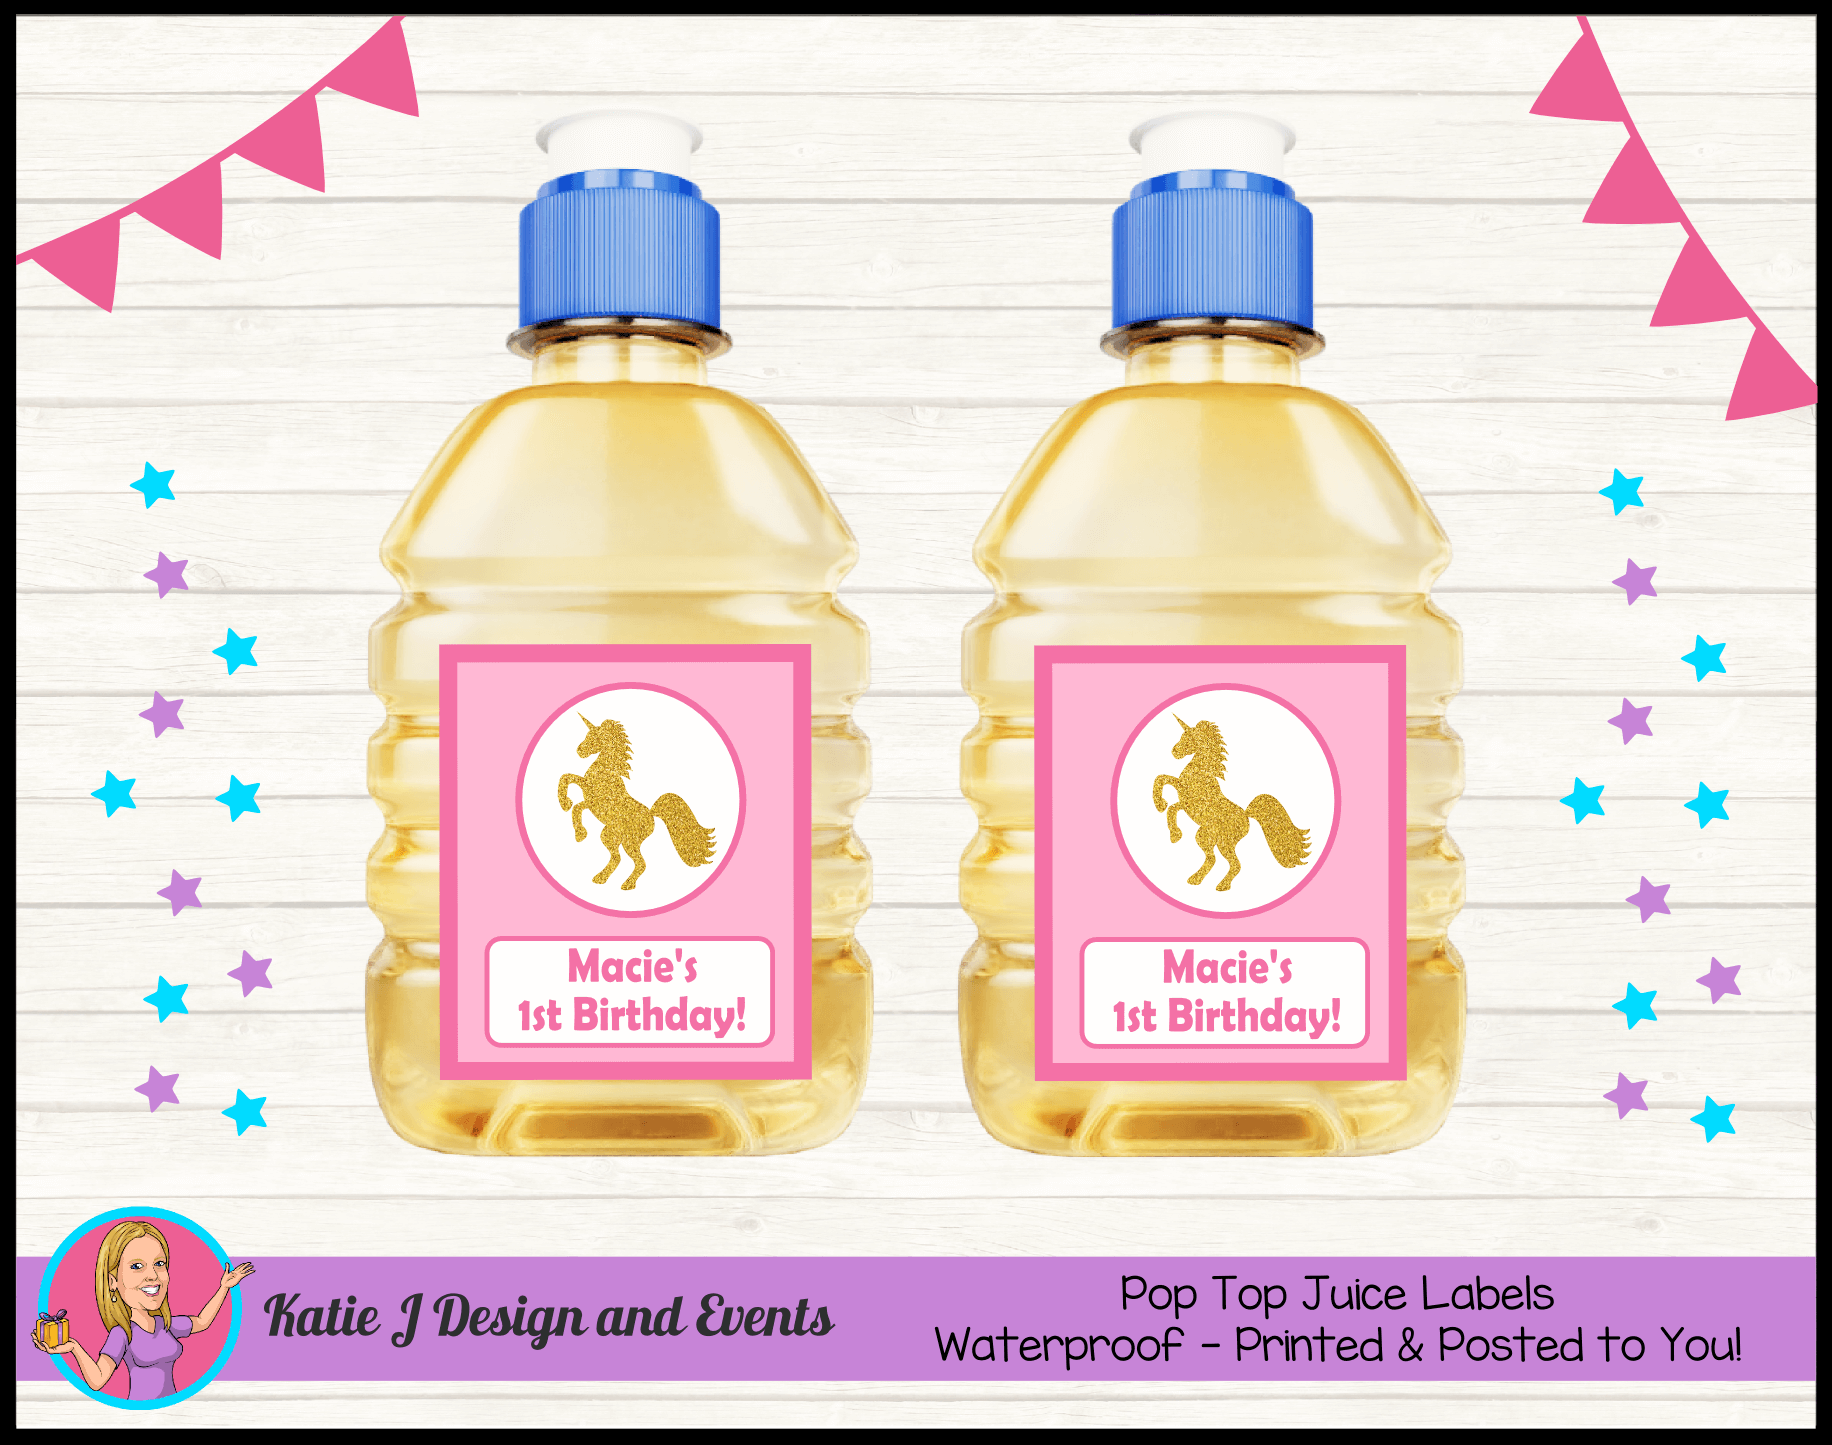 Personalised Custom Pop Top Juice Labels